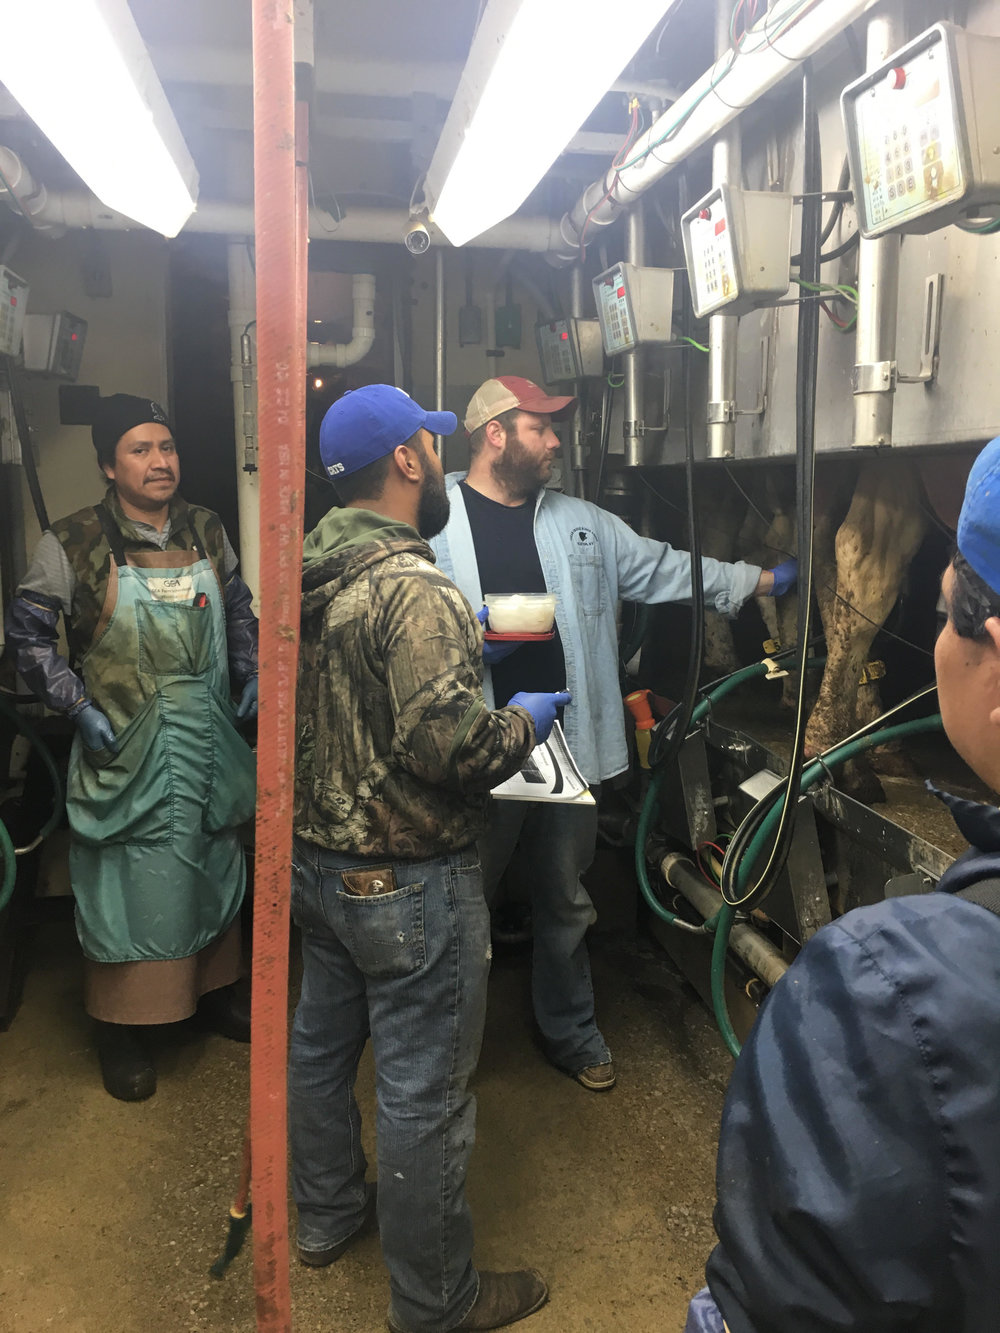 Late nights and early mornings are the norm for the people involved with our lab. Dr. John and Armando are teaching hispanic workers the tricks of the trade. Armando handles interpretation for us when working with dairies needing bilingual services.